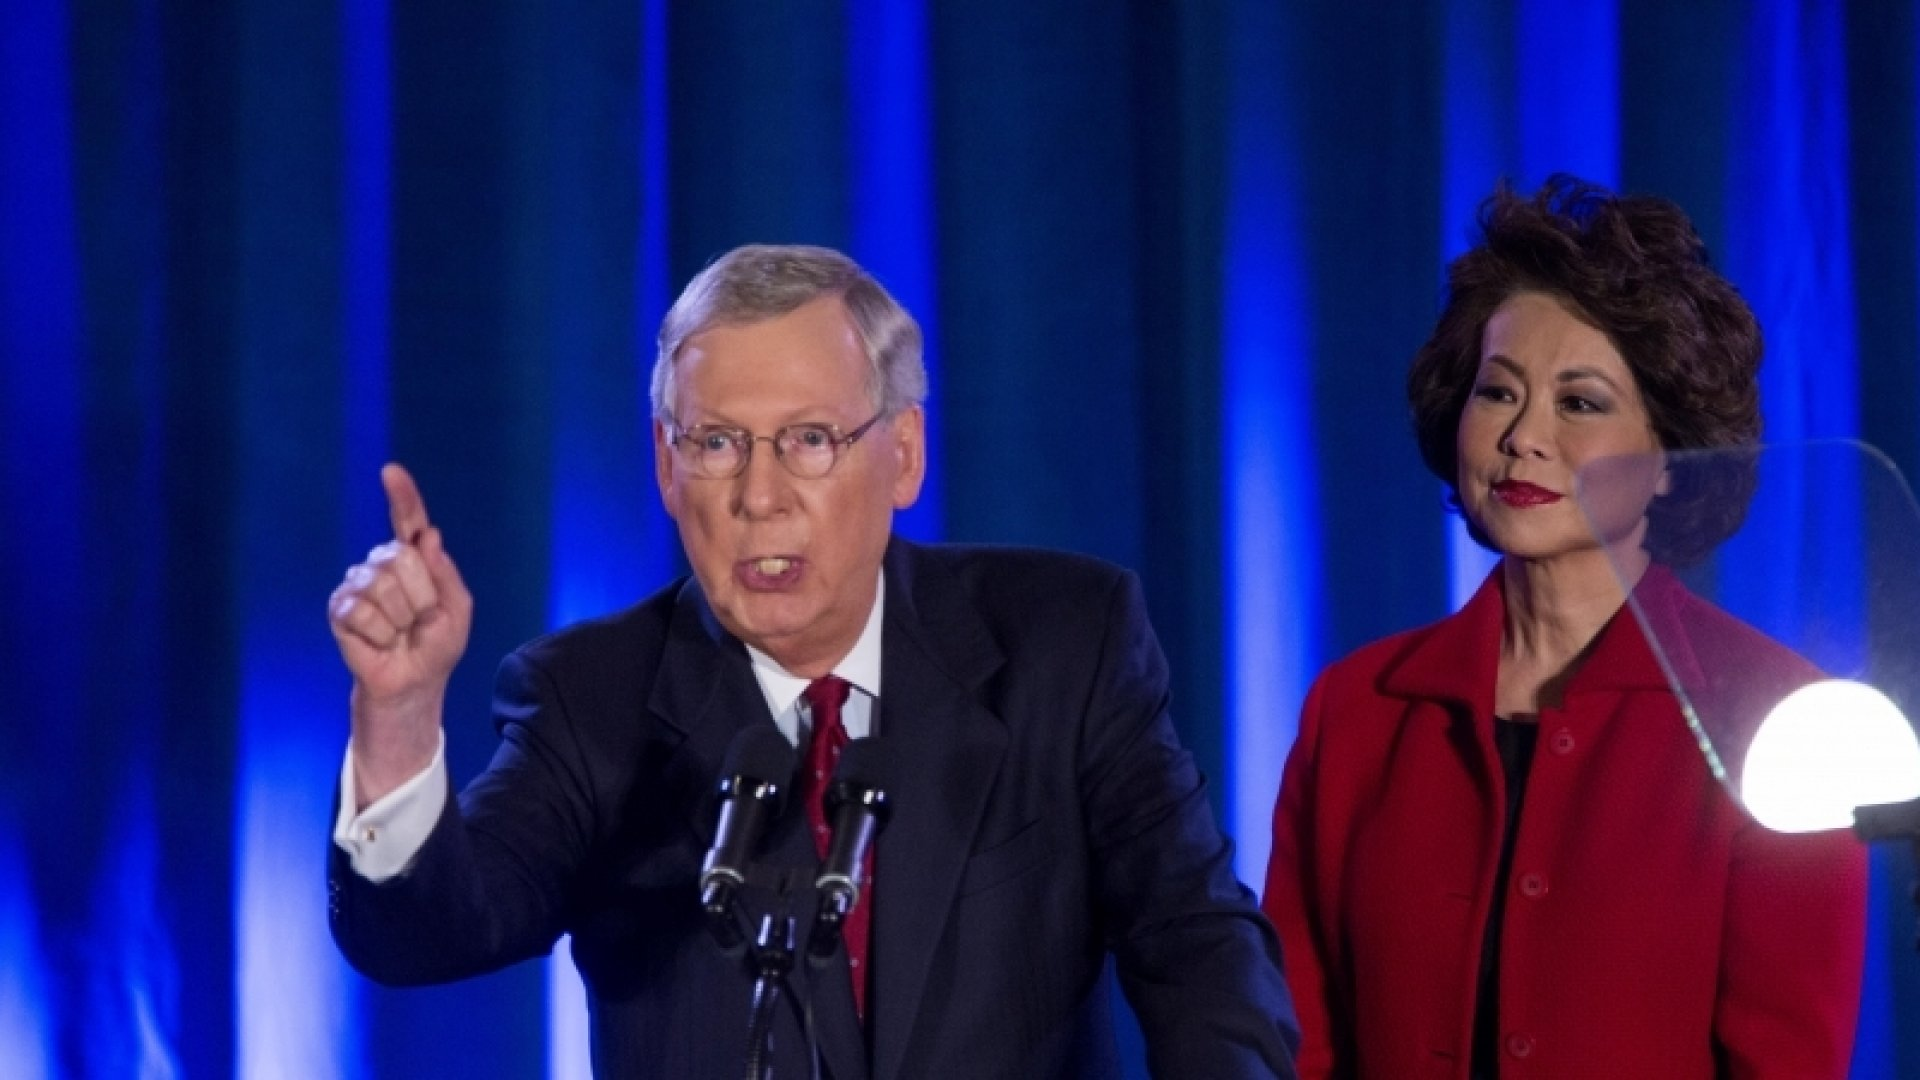 5 Ways to Profit From the New Republican Controlled Congress